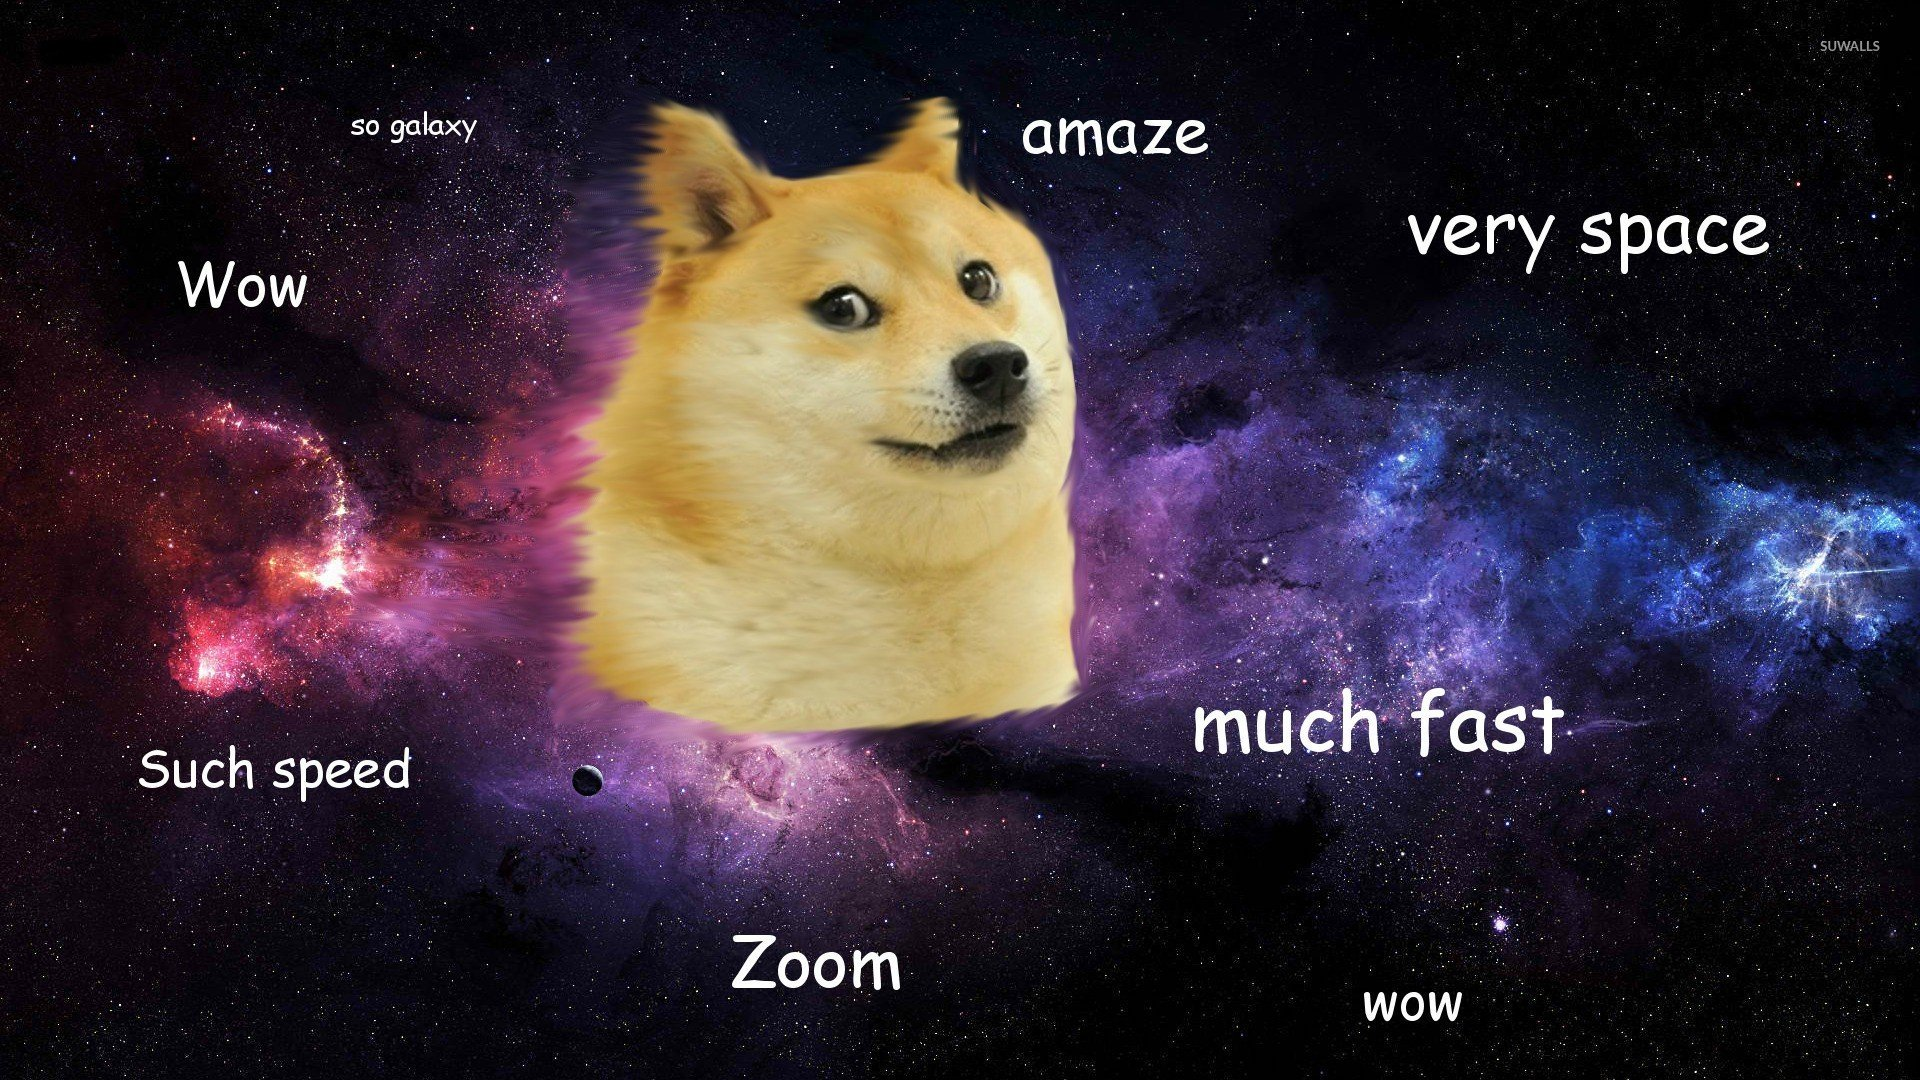 Doge wallpaper Meme wallpapers 27302 1920x1080